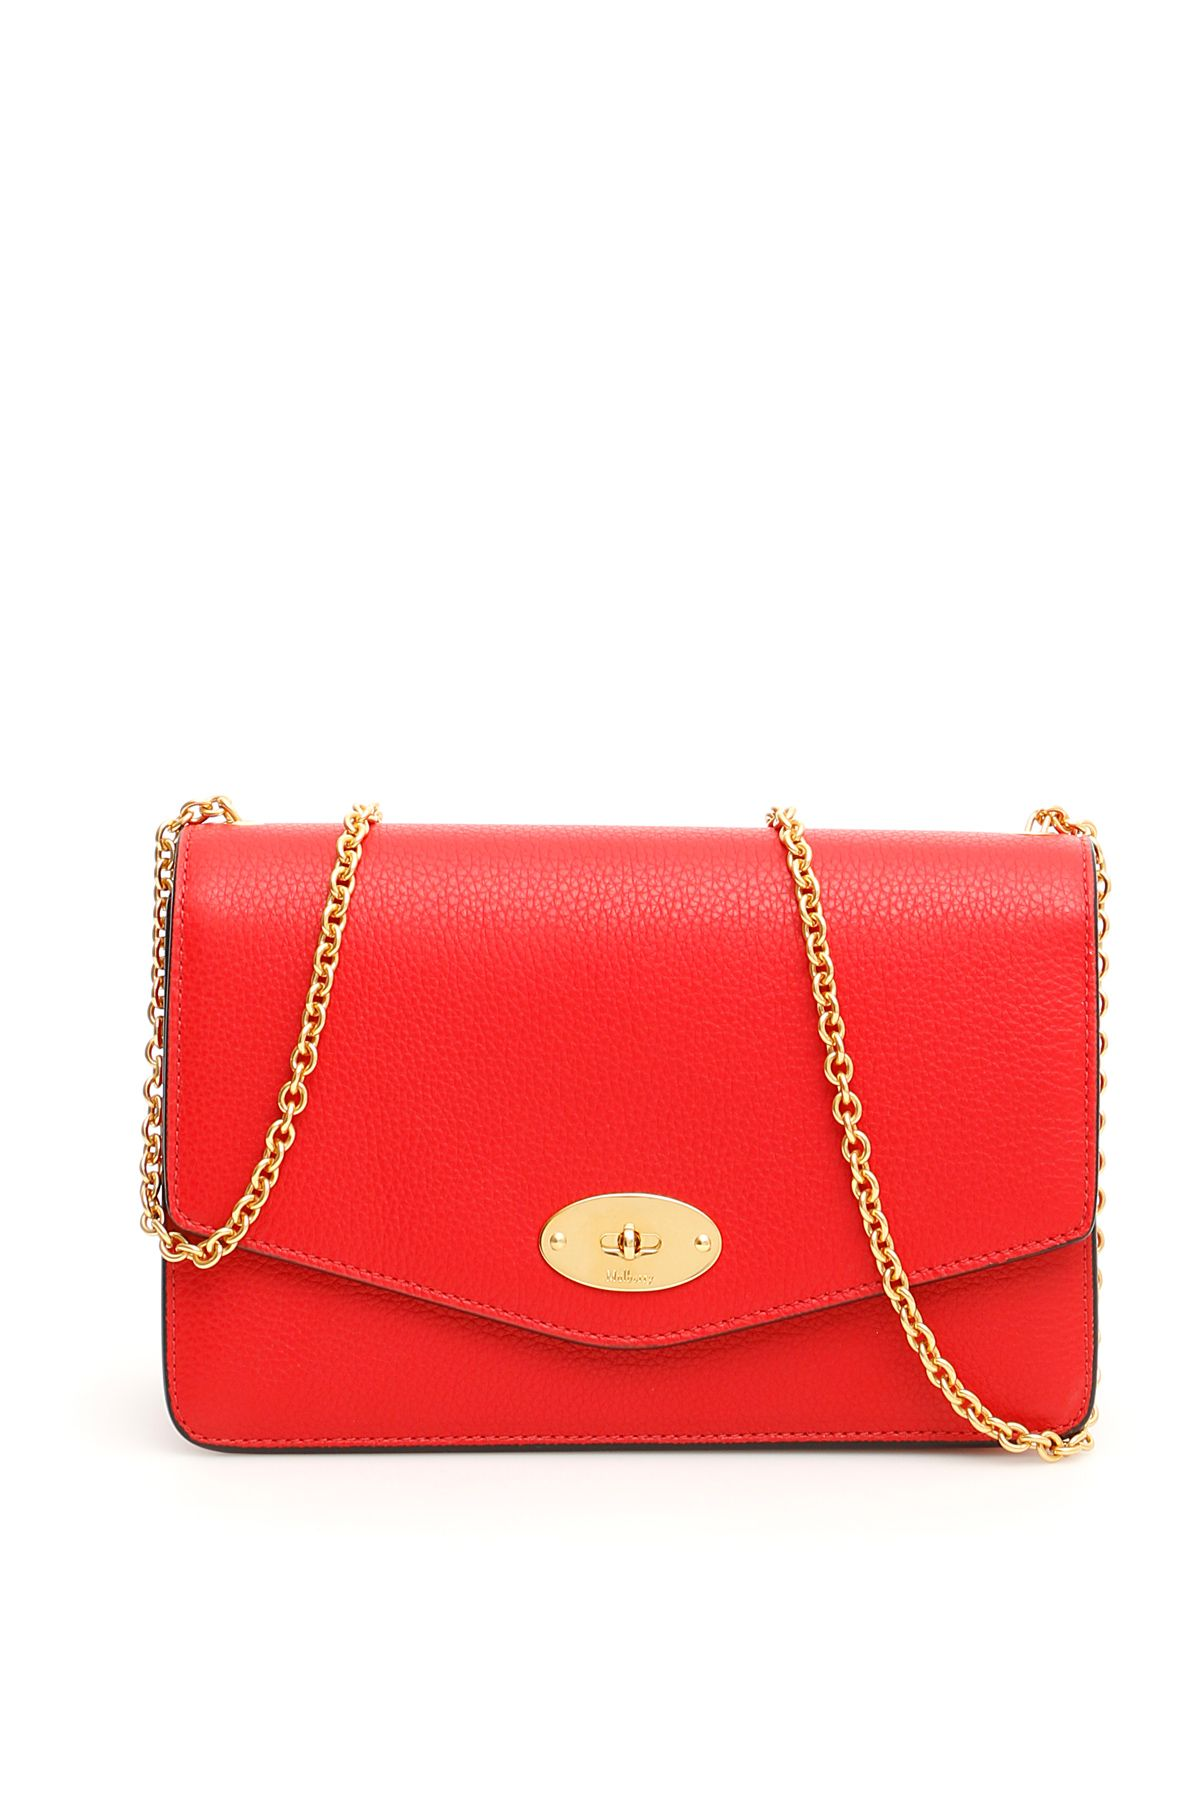 MULBERRY Grain Leather Darley Bag in Ruby Red